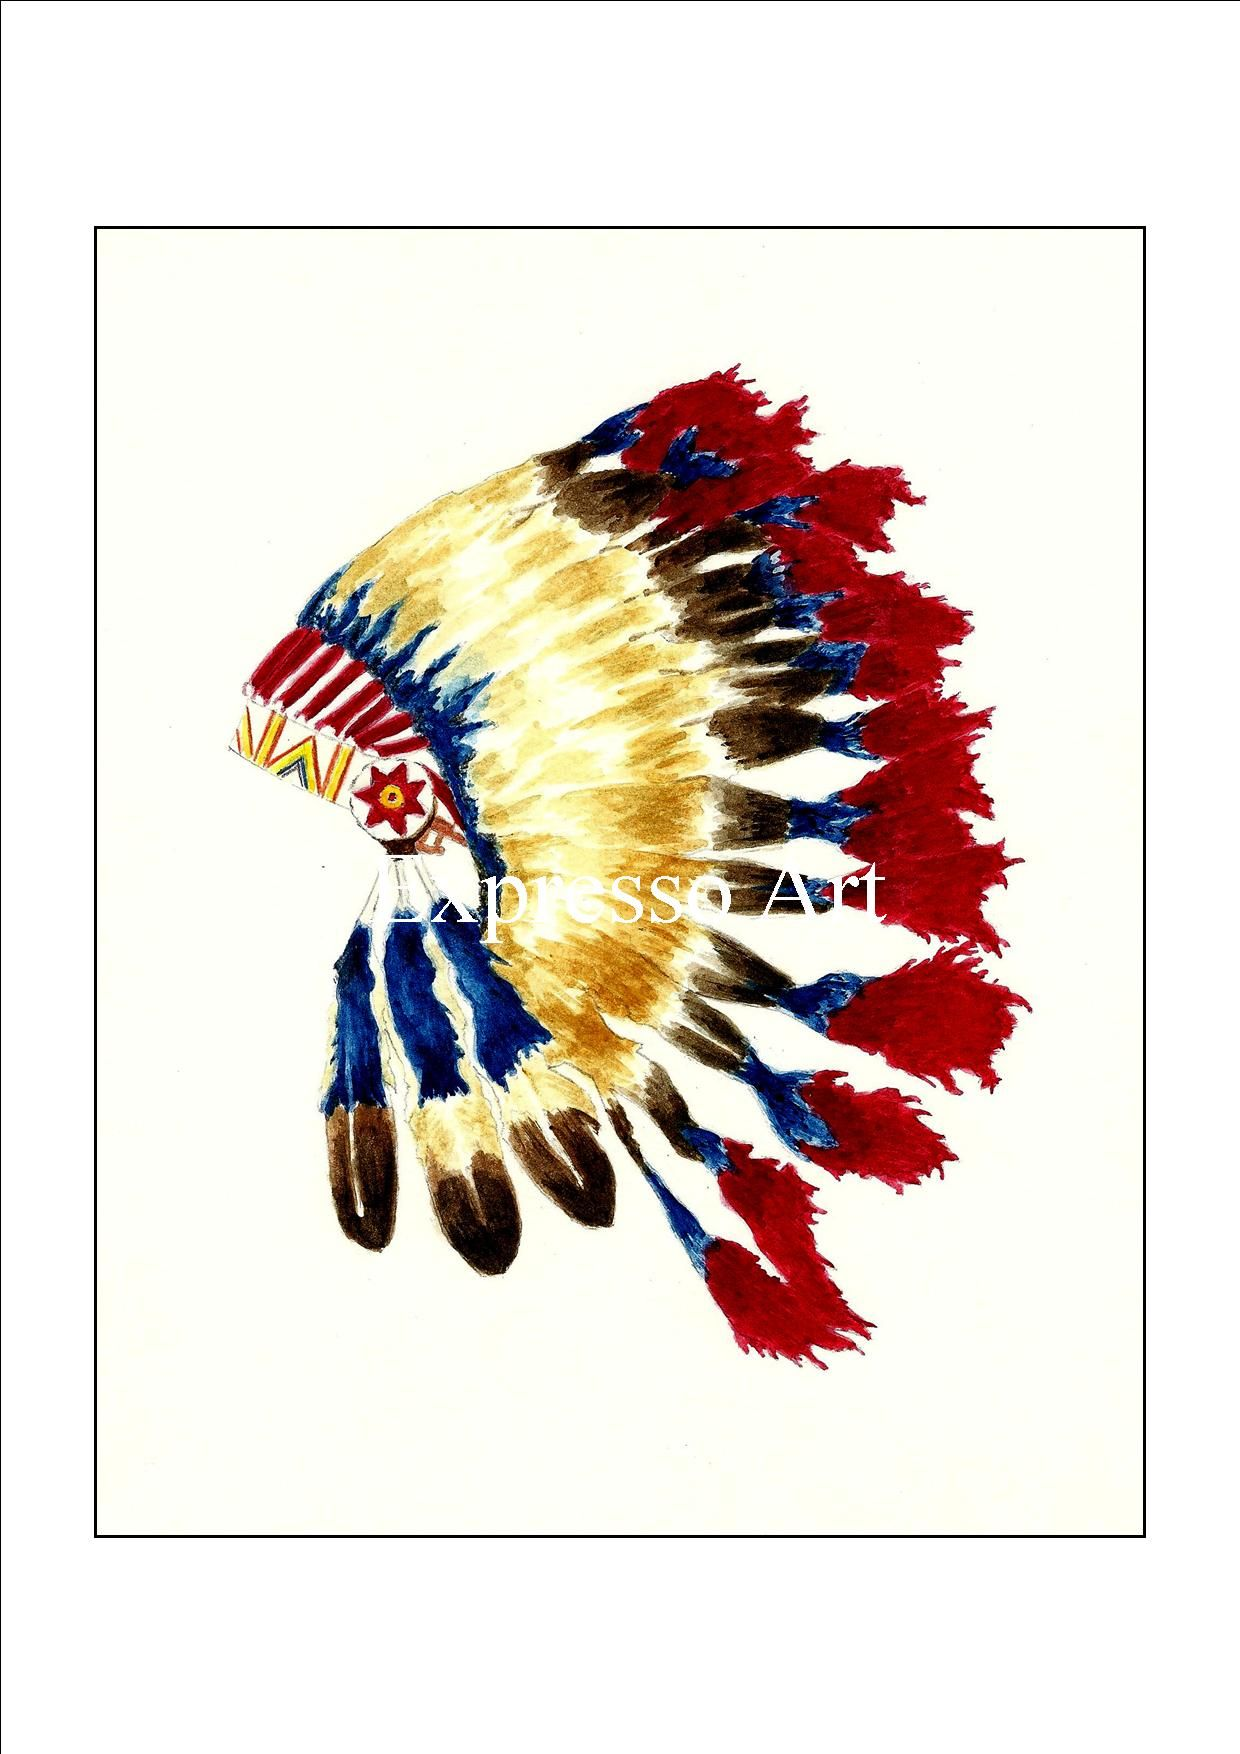 Cherokee headdress this is available at the price of 10